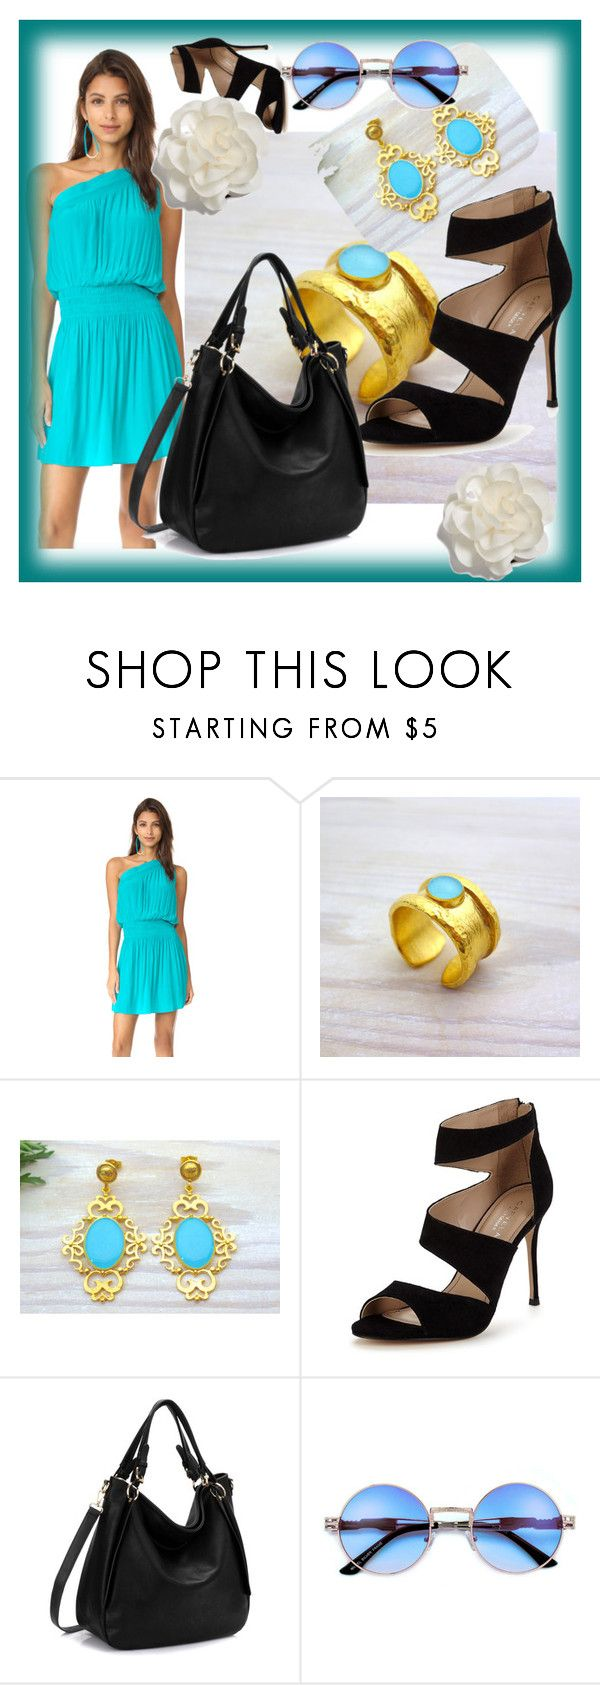 """Evangelos Jewellery."" by sabahetasaric ❤ liked on Polyvore featuring Ramy Brook, Carvela and Cara"